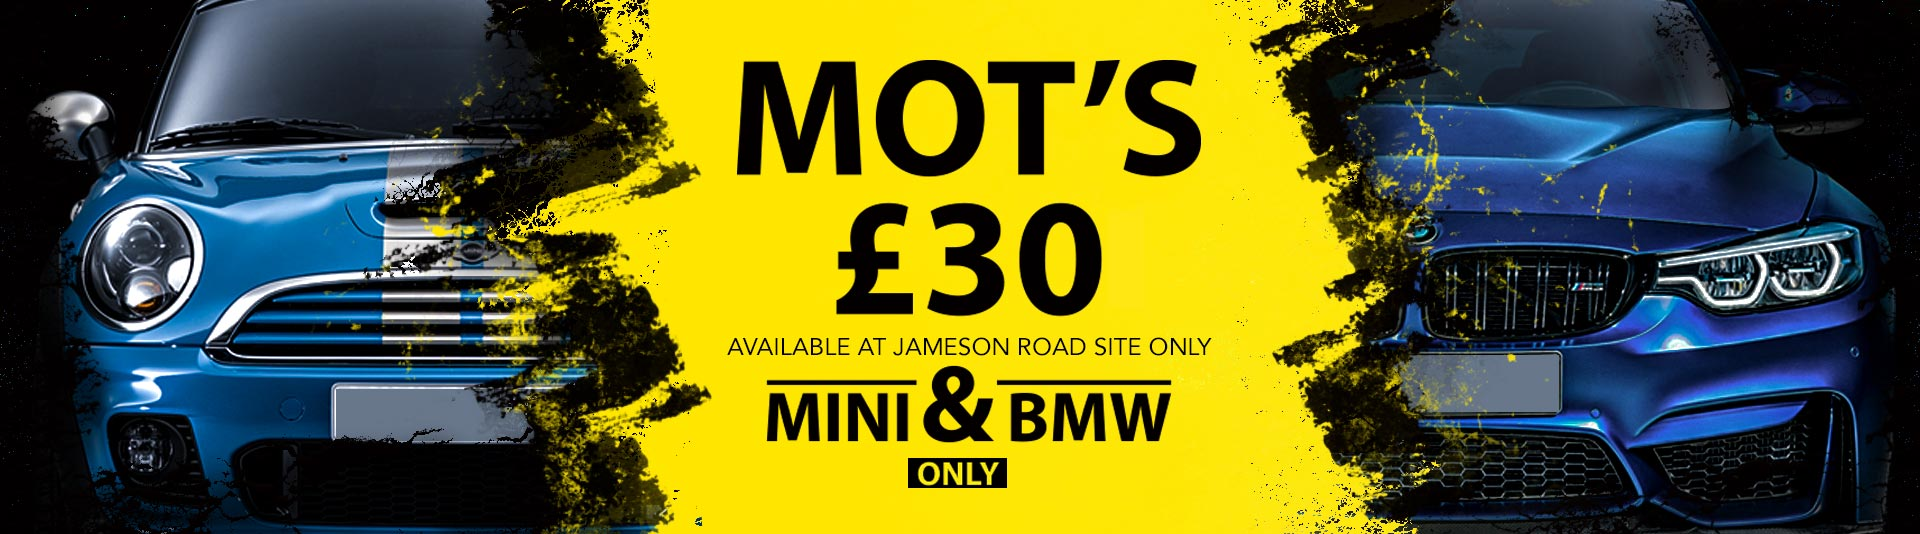 Bournemouth MOT Offer Mini and BMW by Stanfield Garage